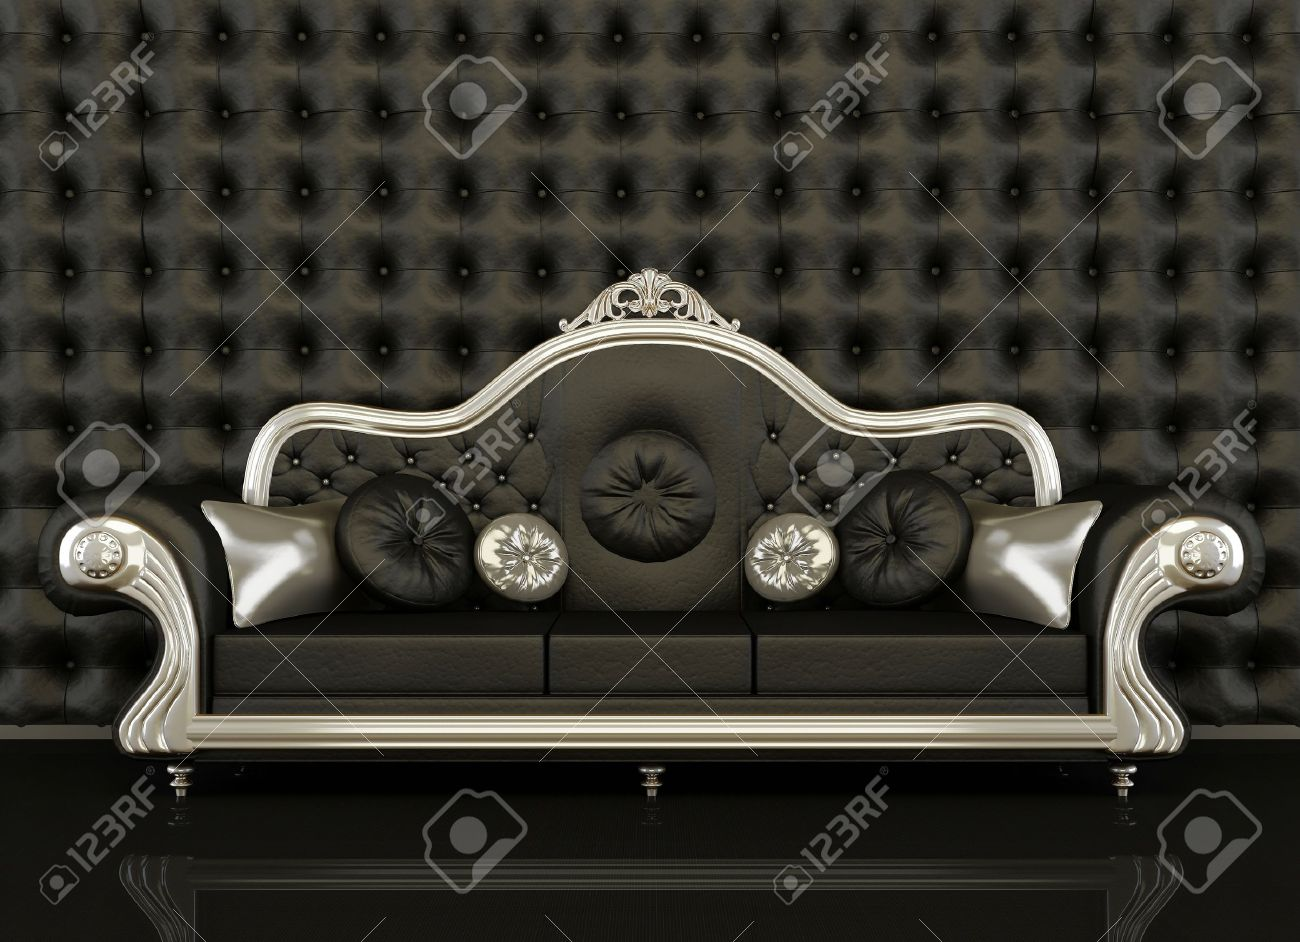 Classic Leather Sofa With A Silver Frame On Black Background. Button  Background Of Black Wall